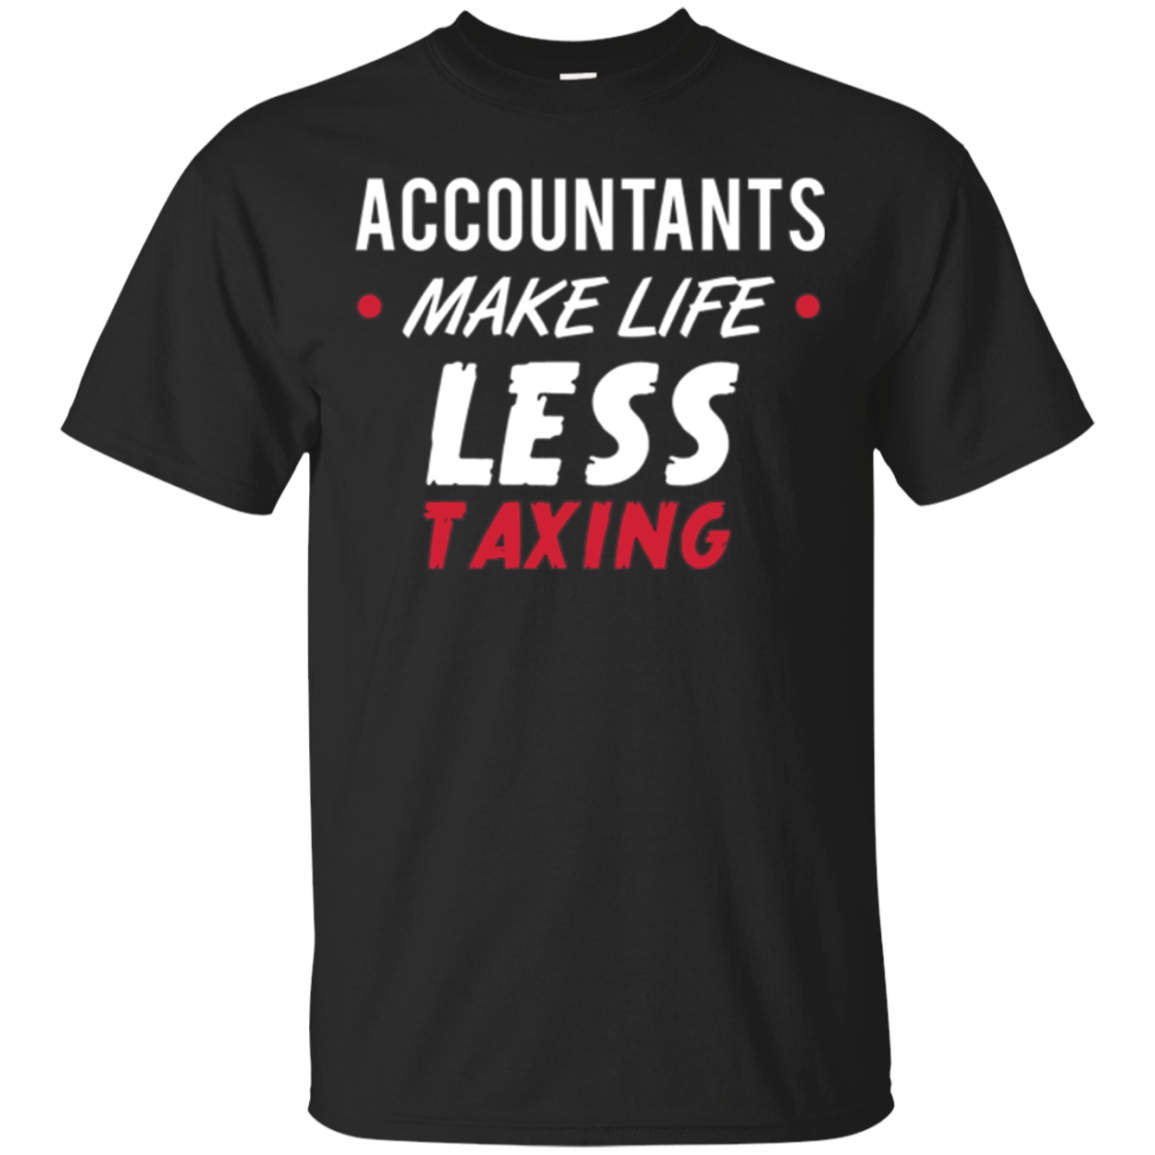 Funny Accountant CPA Long Sleeve Shirt Gift - Less Taxing